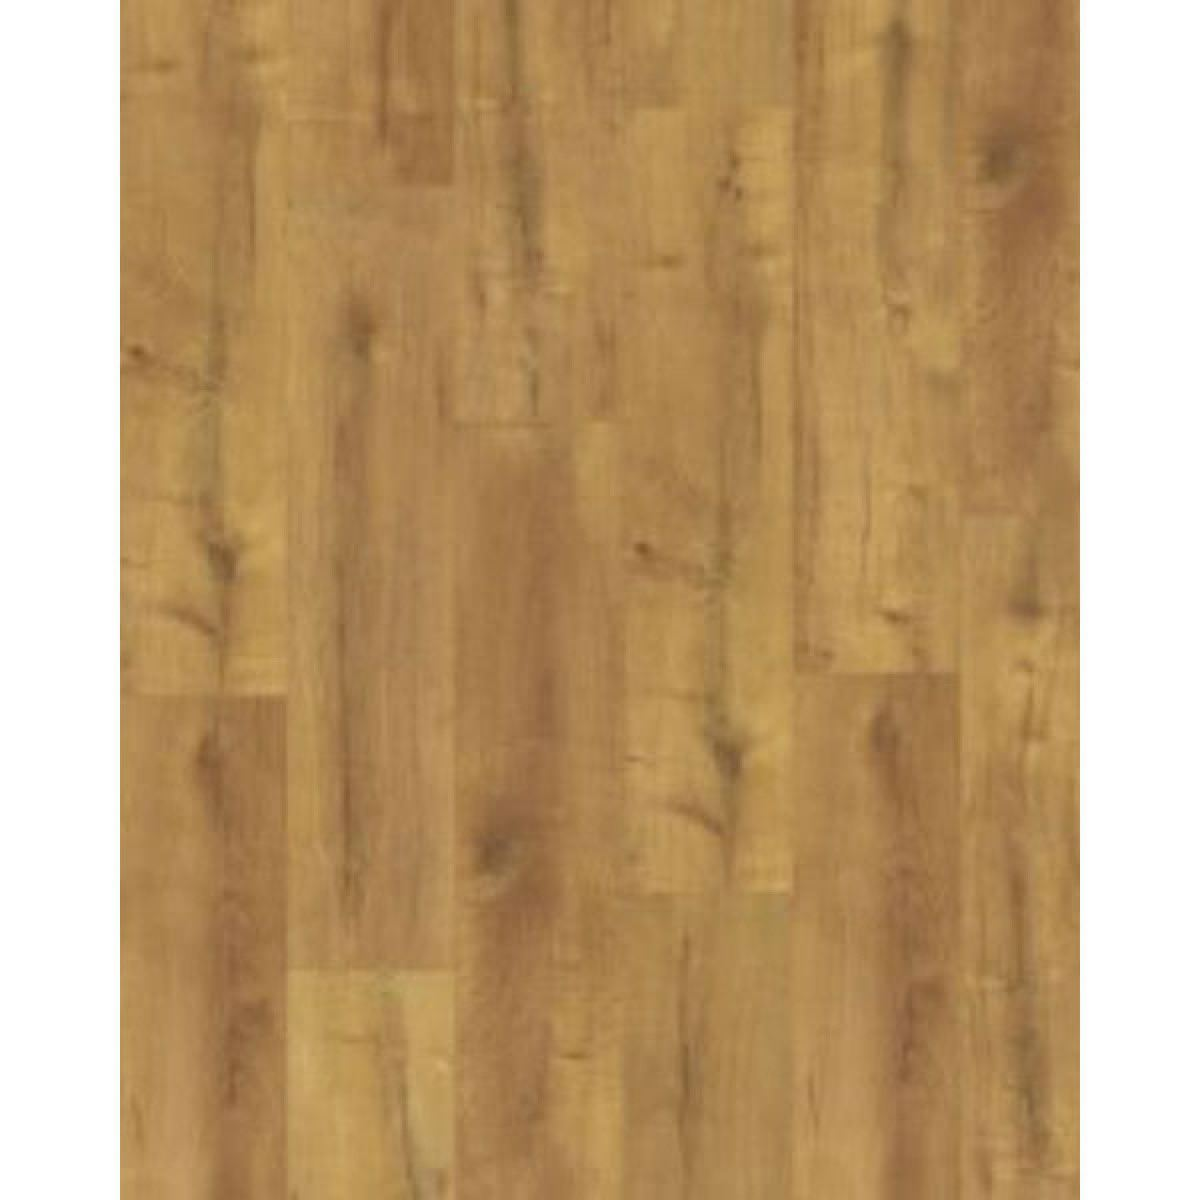 Canadia 11mm Woodgrain Laminate Flooring Is A Heavy Floor And Dream To Fit With Drop Simple Install System